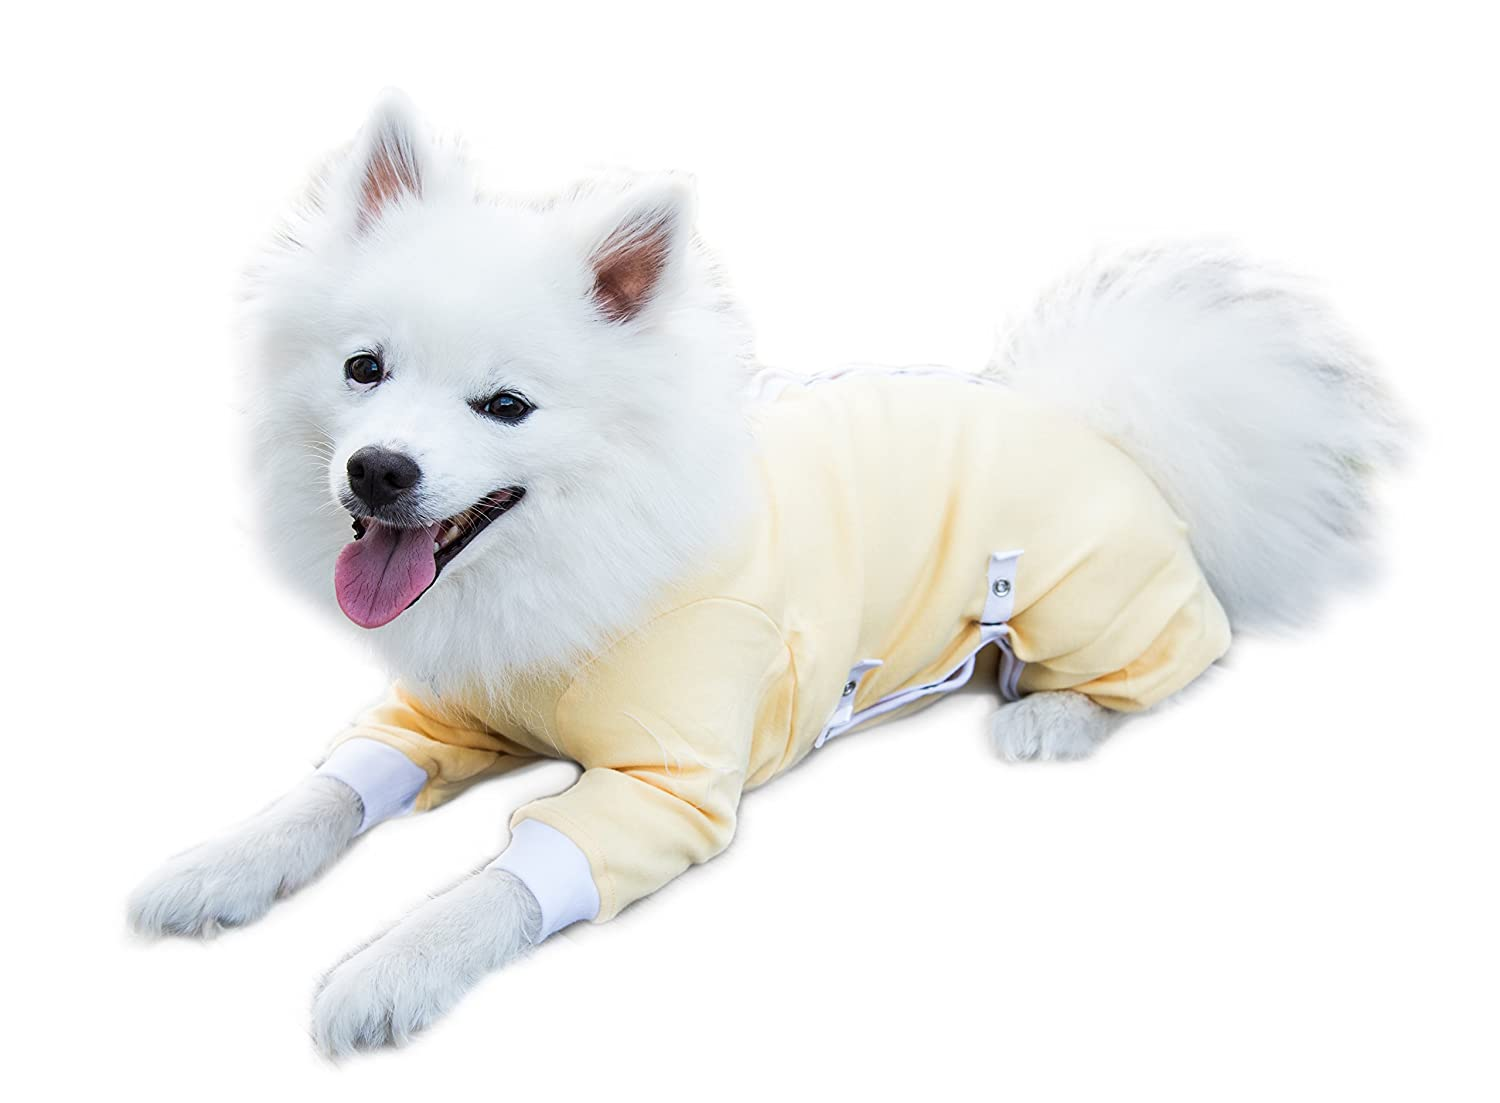 Tulane's Closet Cover Me by Tui Adjustable Fit Step-Into with Long Sleeve for Pets, Large, Yellow